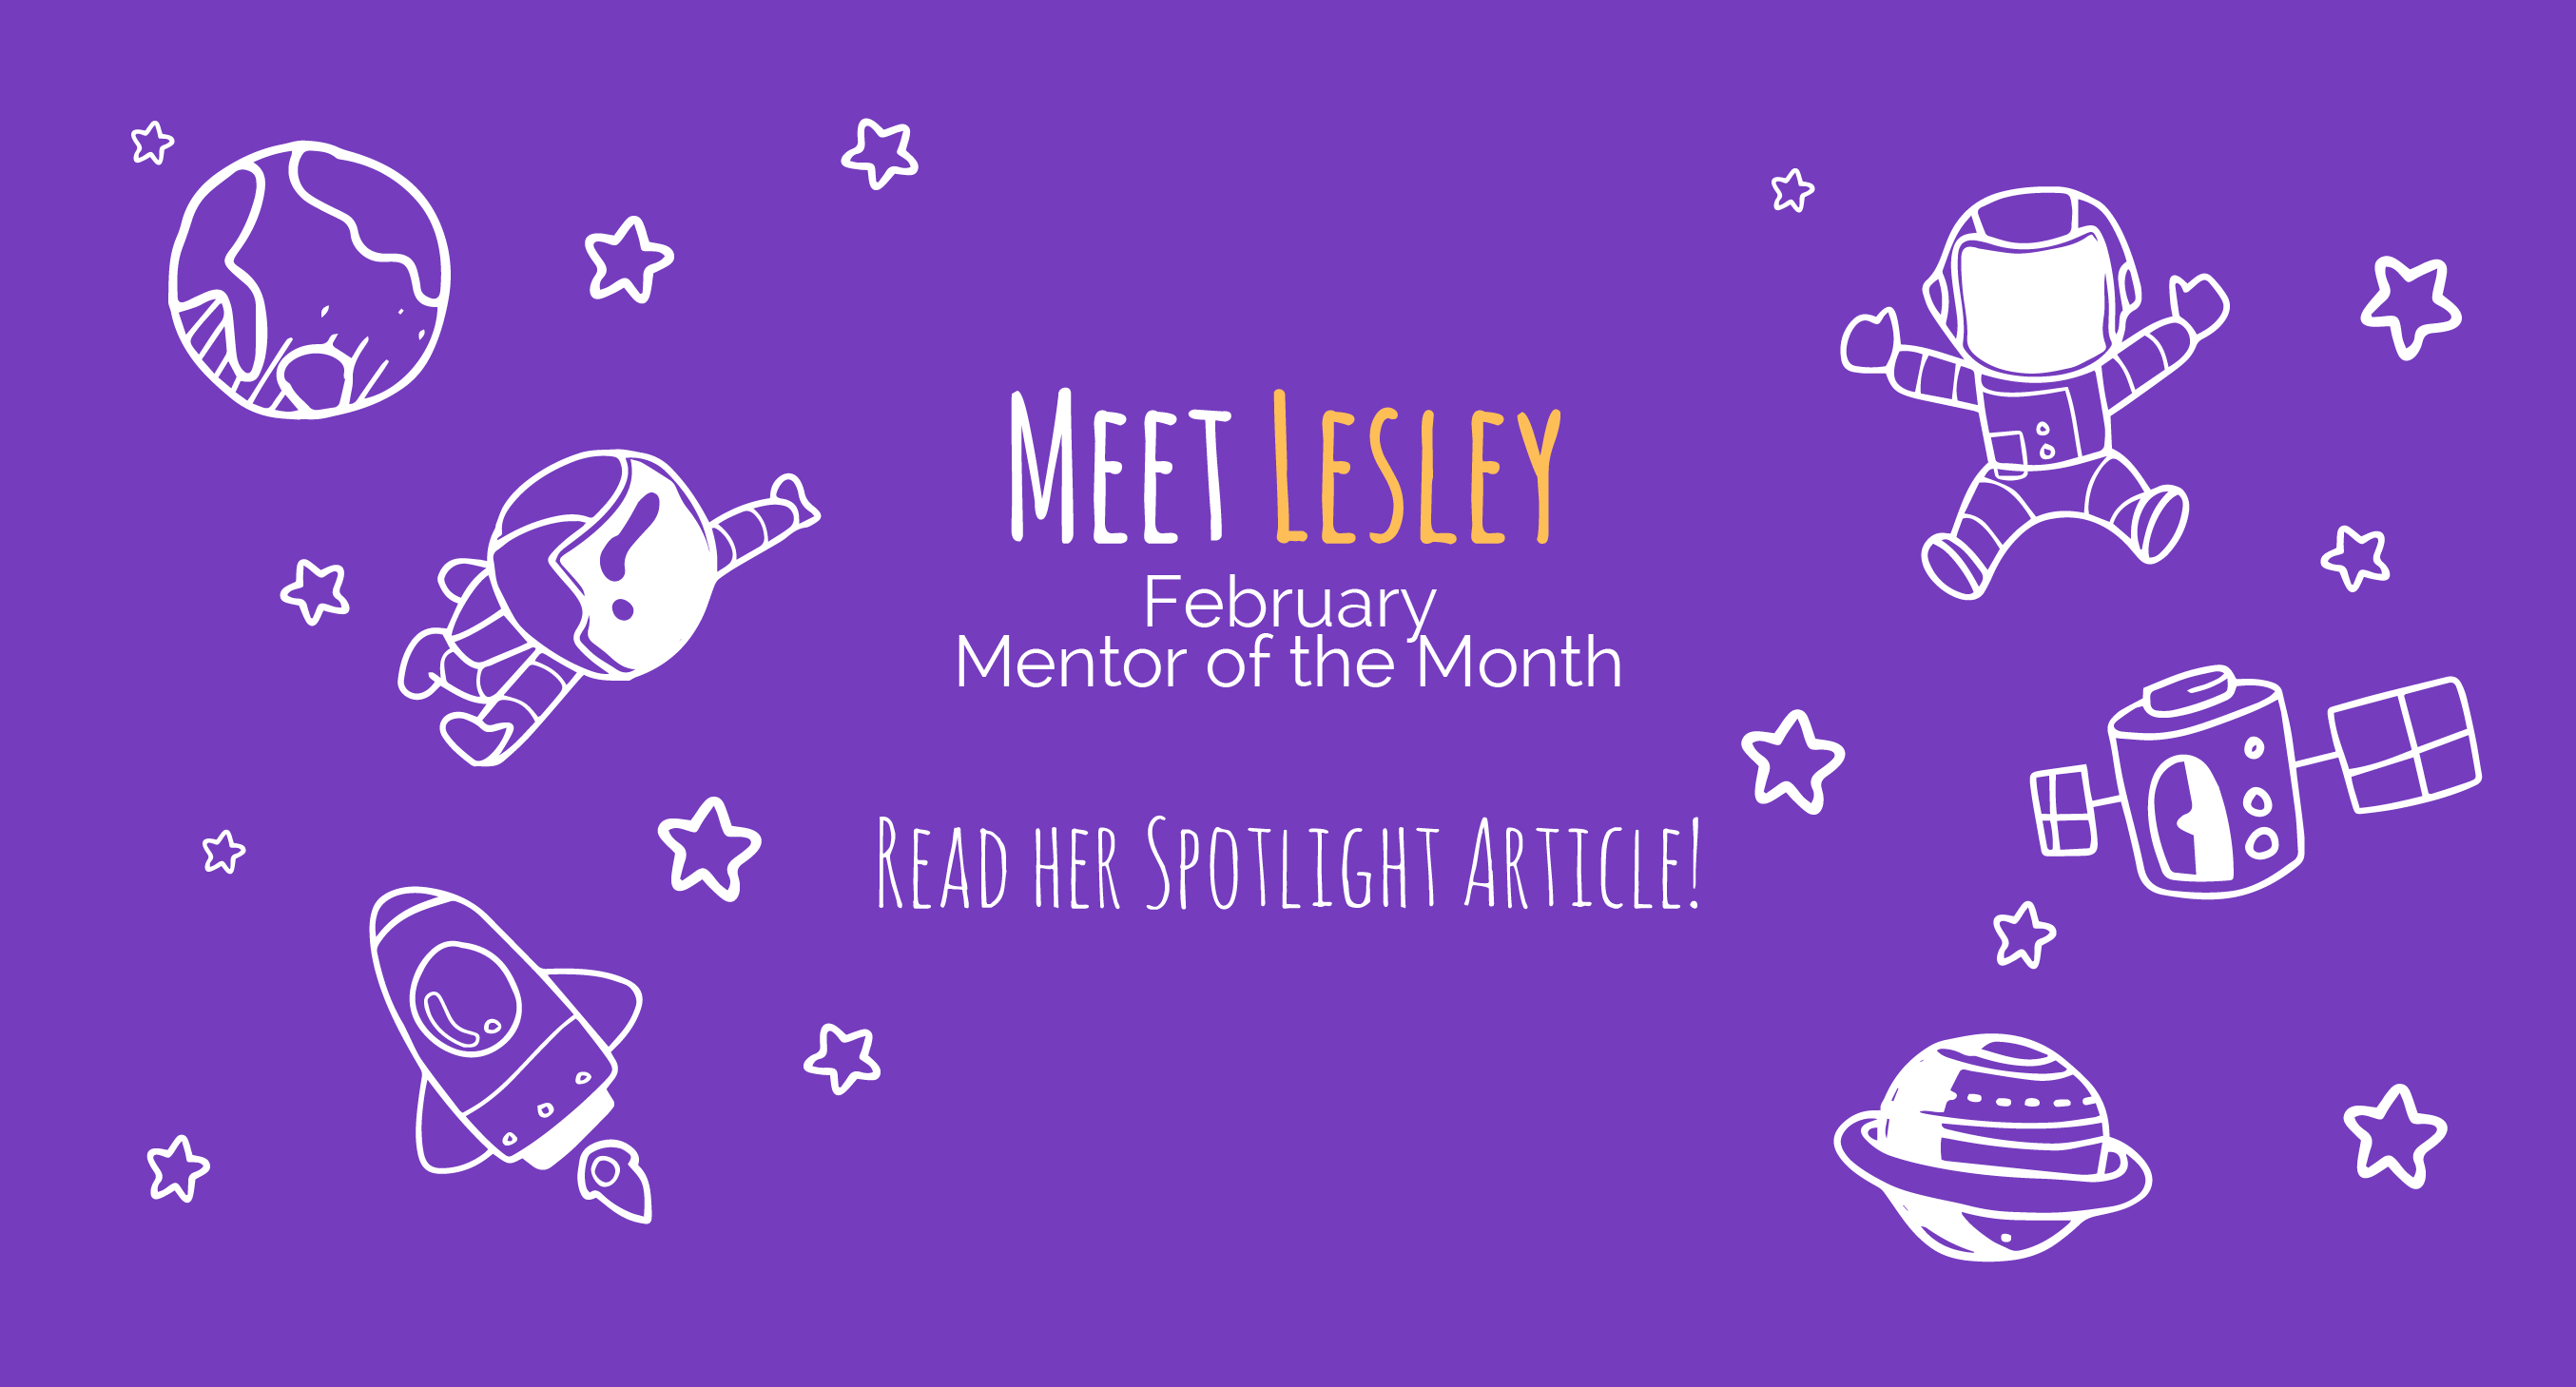 February Mentor of the Month